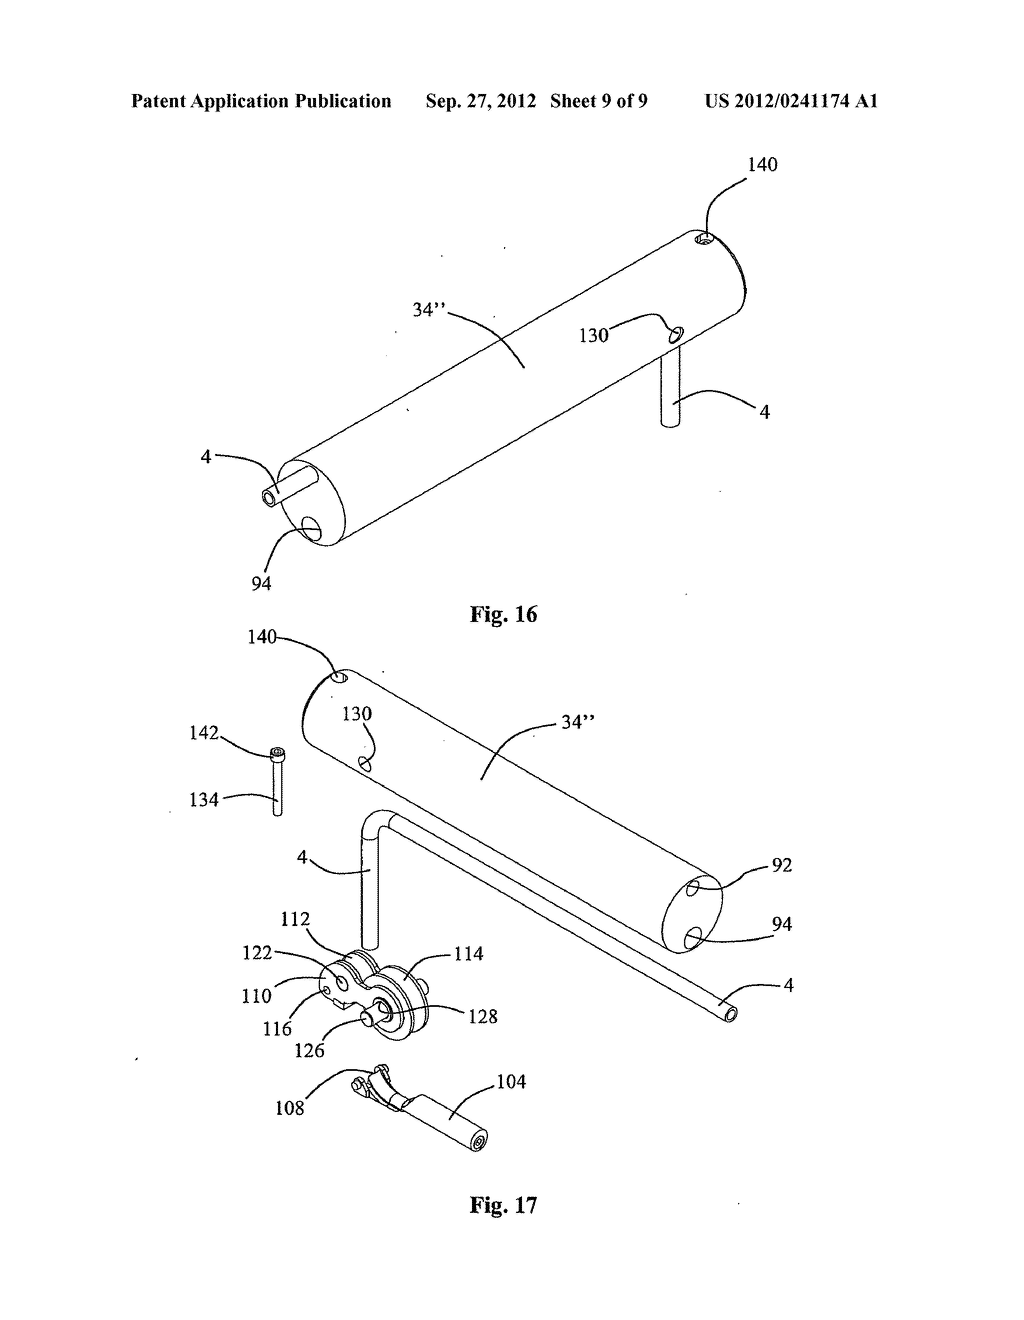 INJECTION MODULE, METHOD FOR USE FOR LATERAL INSERTION AND BENDING OF A     COILED TUBING VIA A SIDE OPENING IN A WELL - diagram, schematic, and image 10